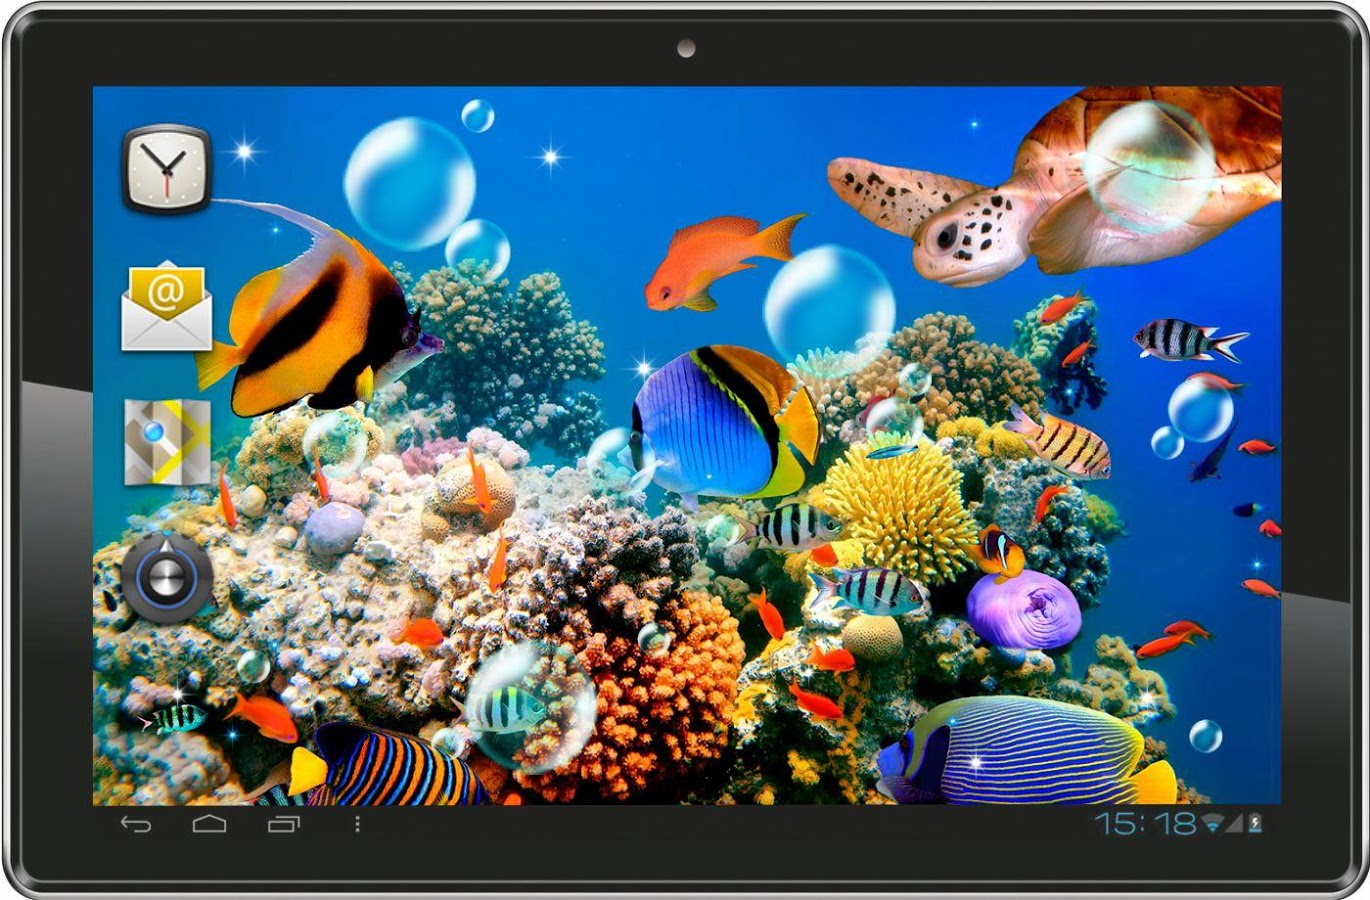 Fish aquarium wallpaper wallpapersafari for Desktop fish tank